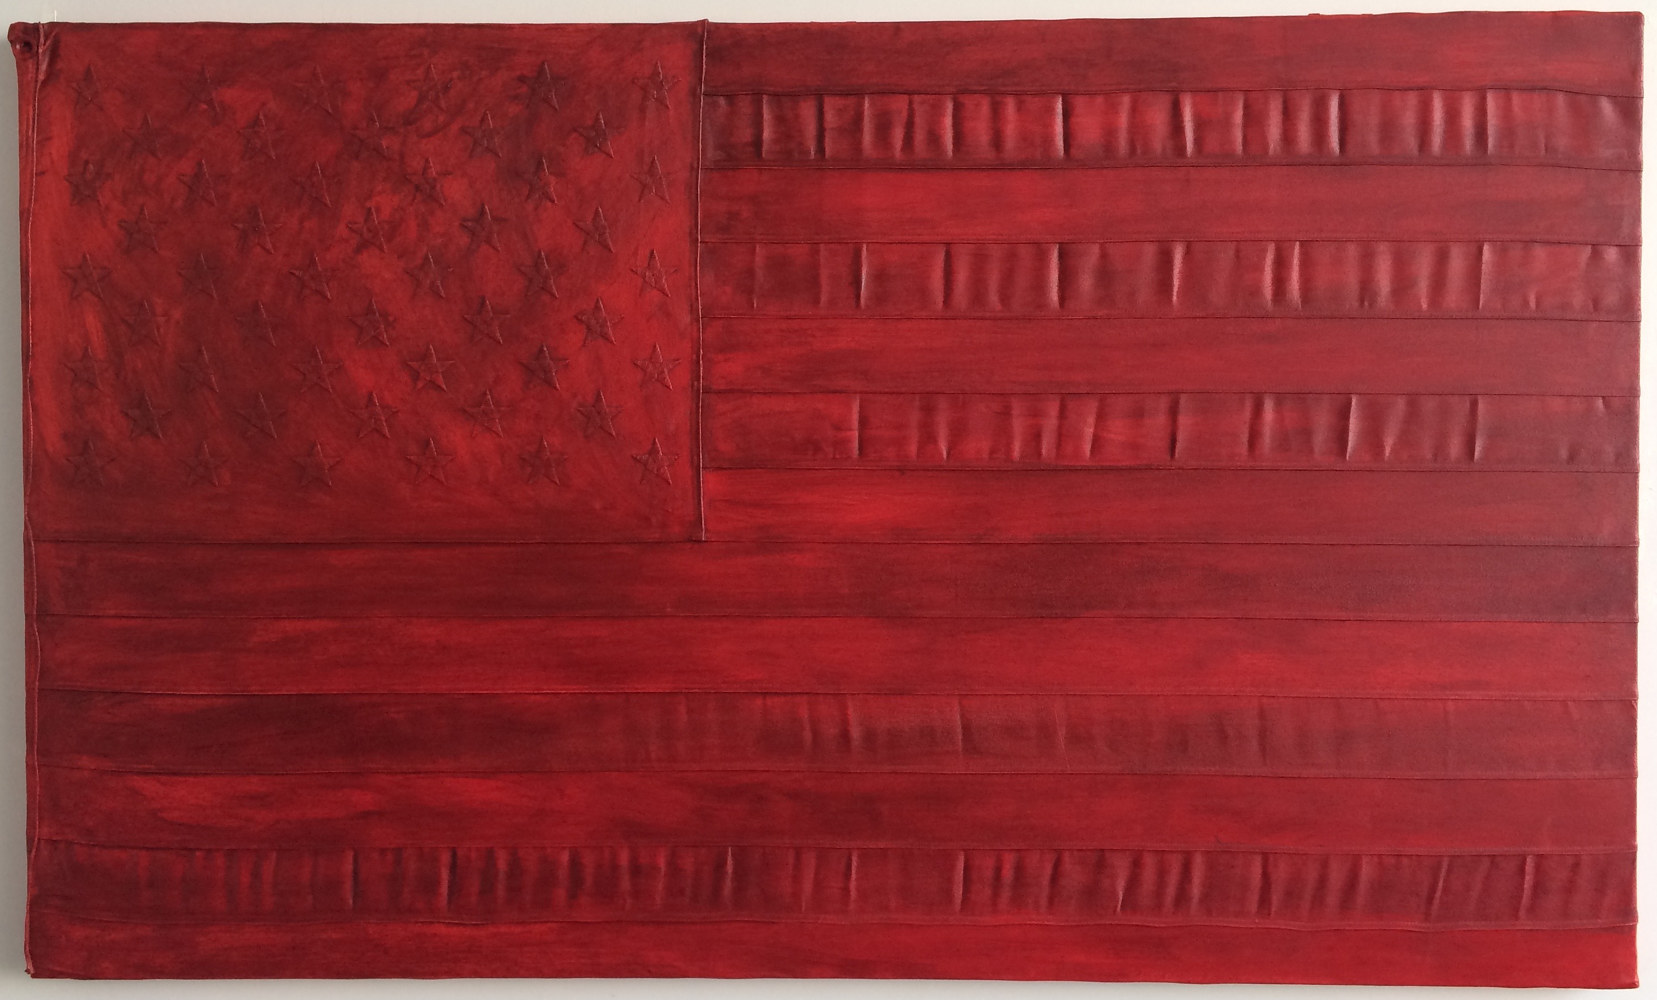 Oil painting Red Flag, 3 x 5, Oil on sewn and embroidered canvas by Edward Miller